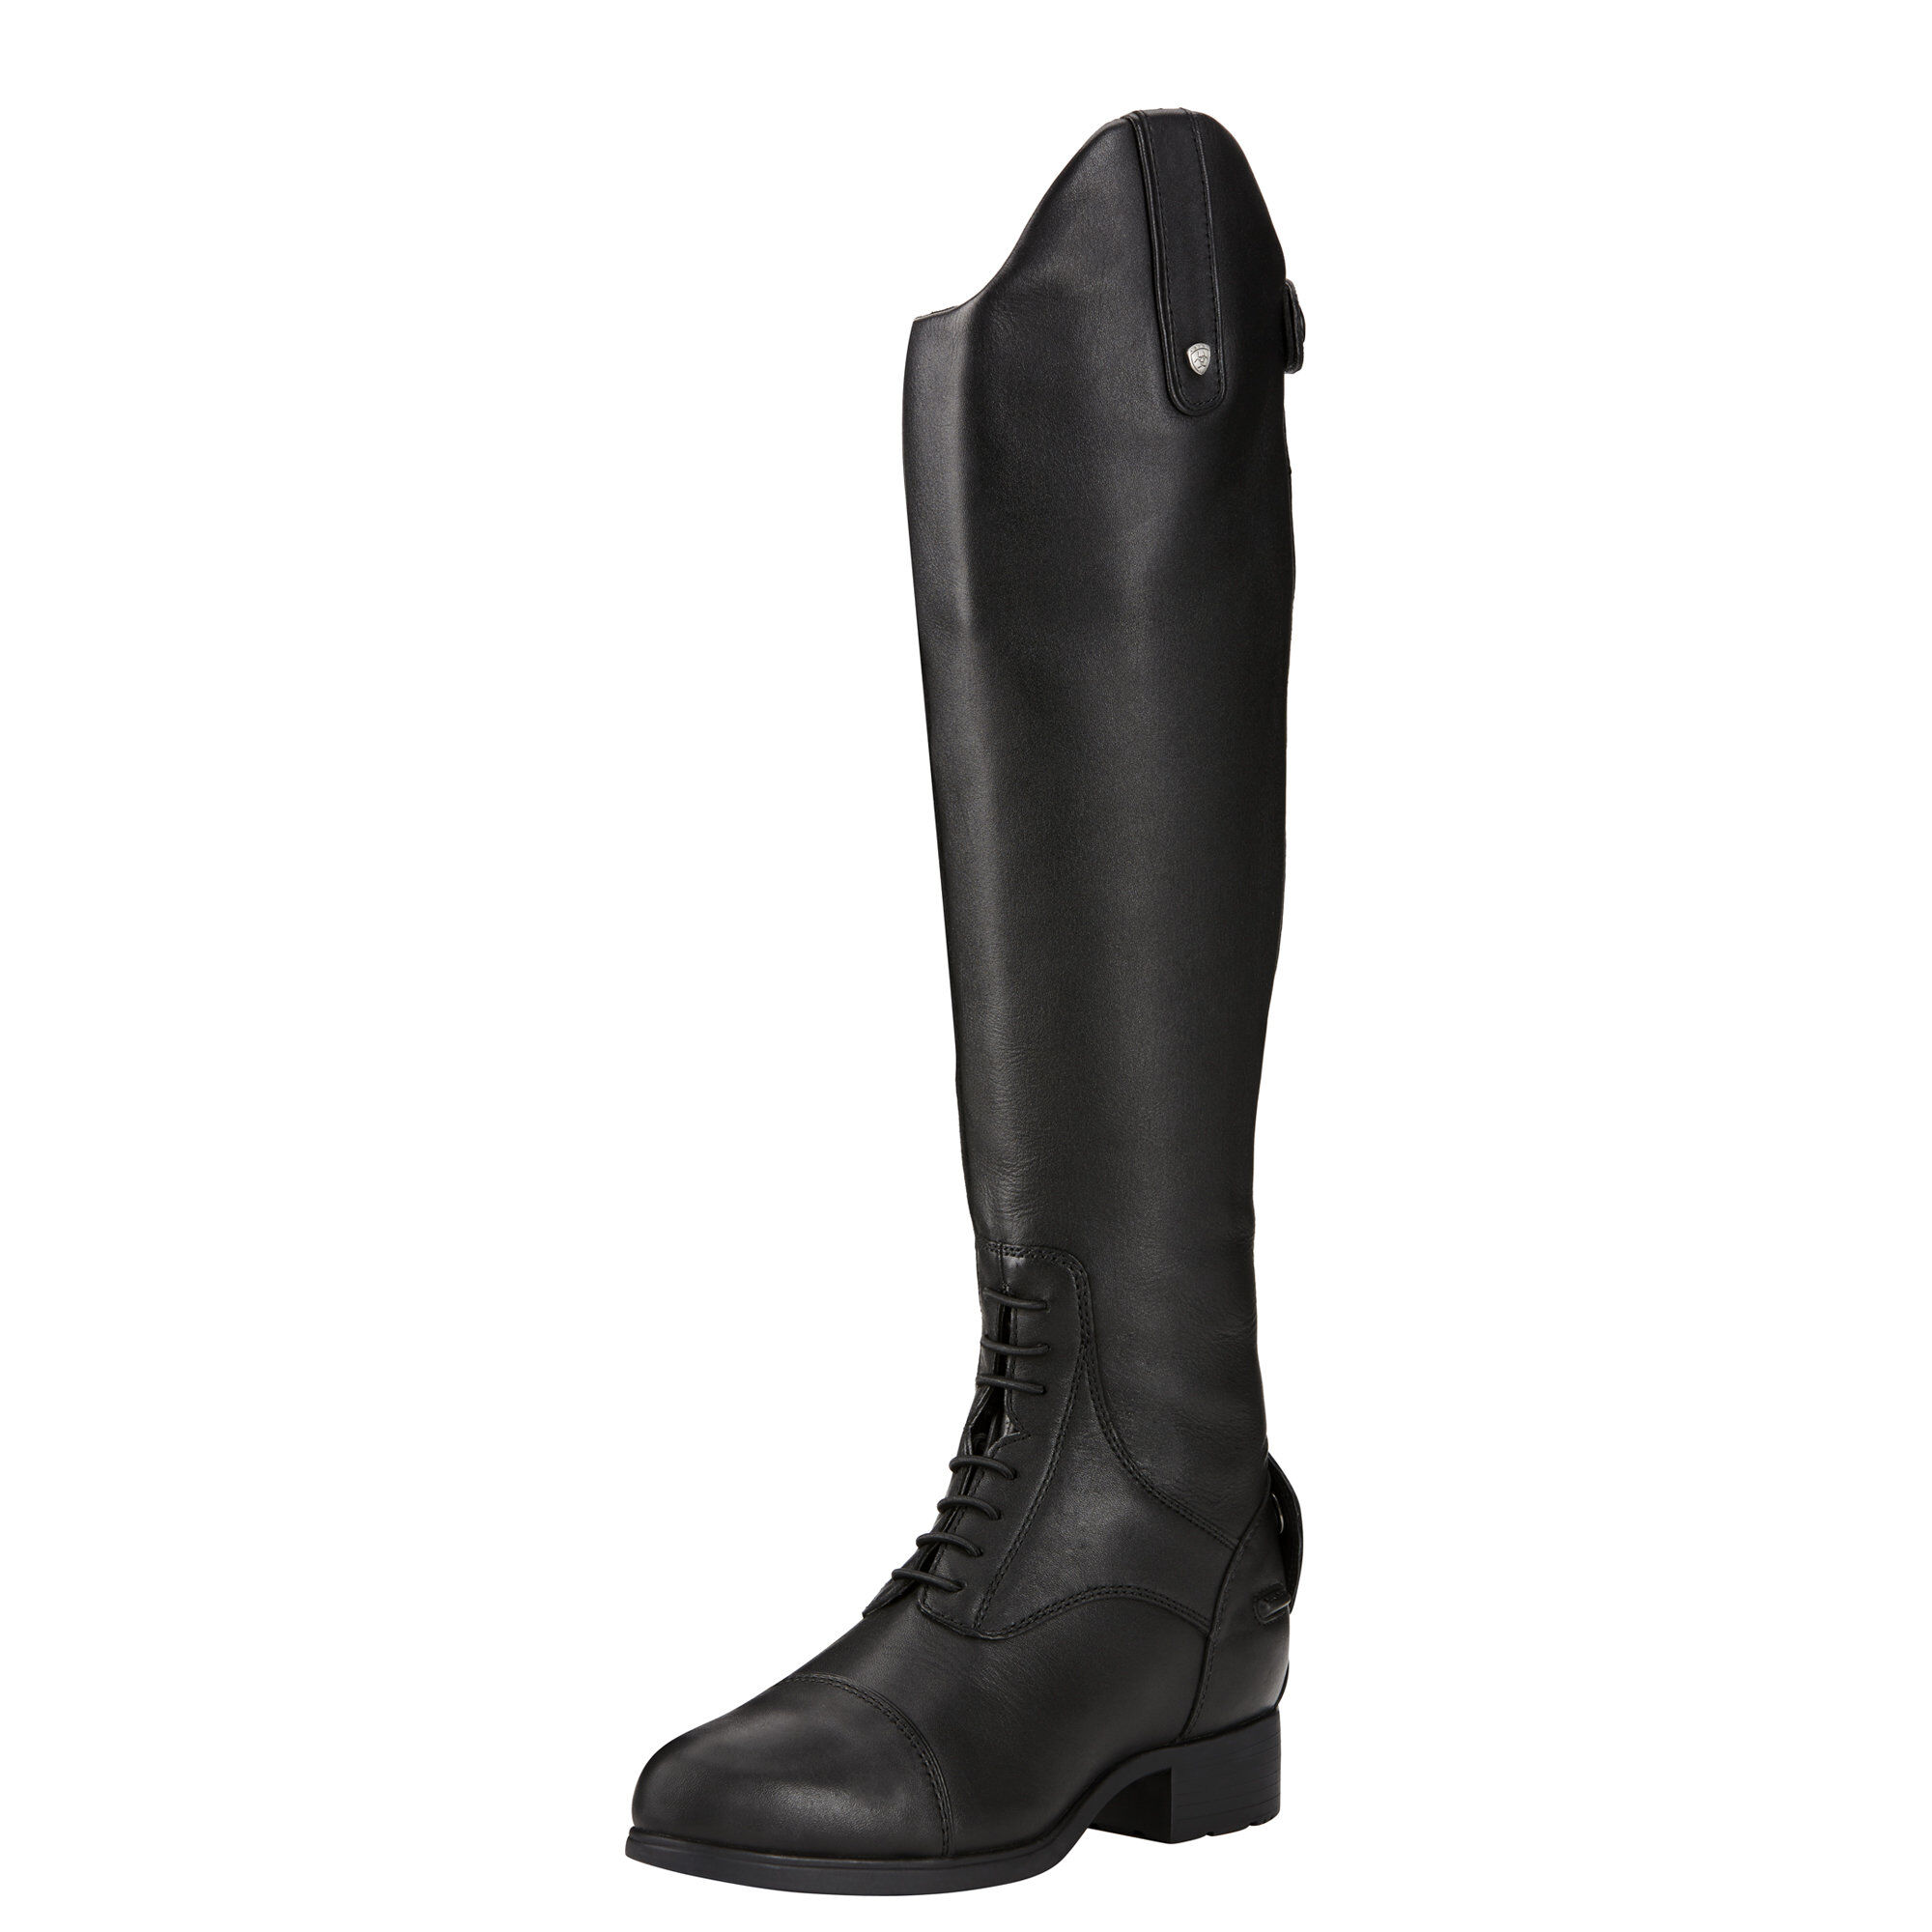 Women's Bromont Pro Tall Waterproof Insulated Tall Riding Boots in Black by Ariat